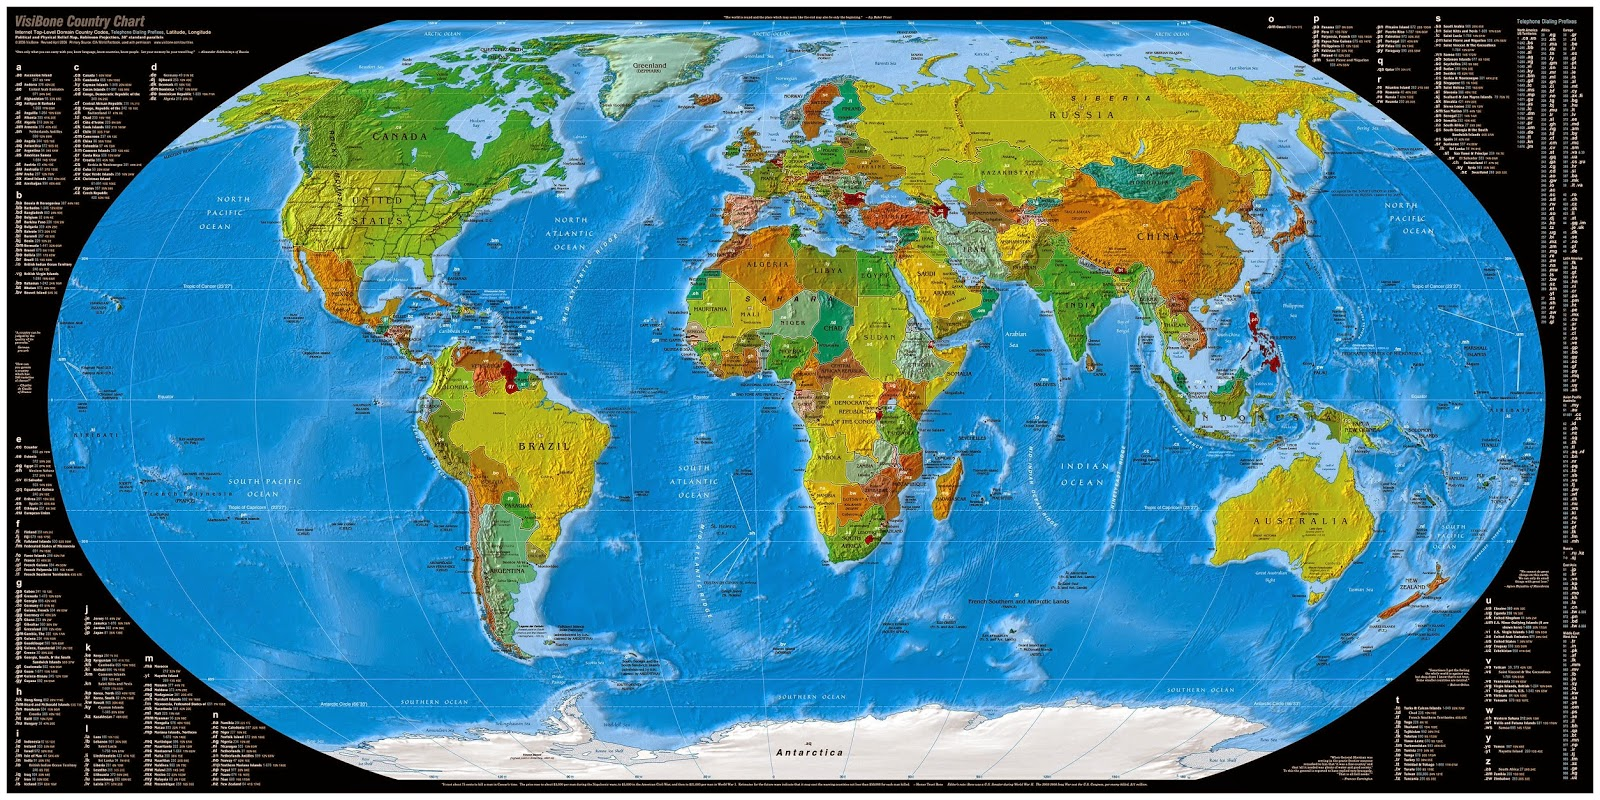 World map desktop wallpaper hd wallpapersafari wallpaper with countries hd world map wallpapers best 28 hd world map 1600x800 gumiabroncs Choice Image